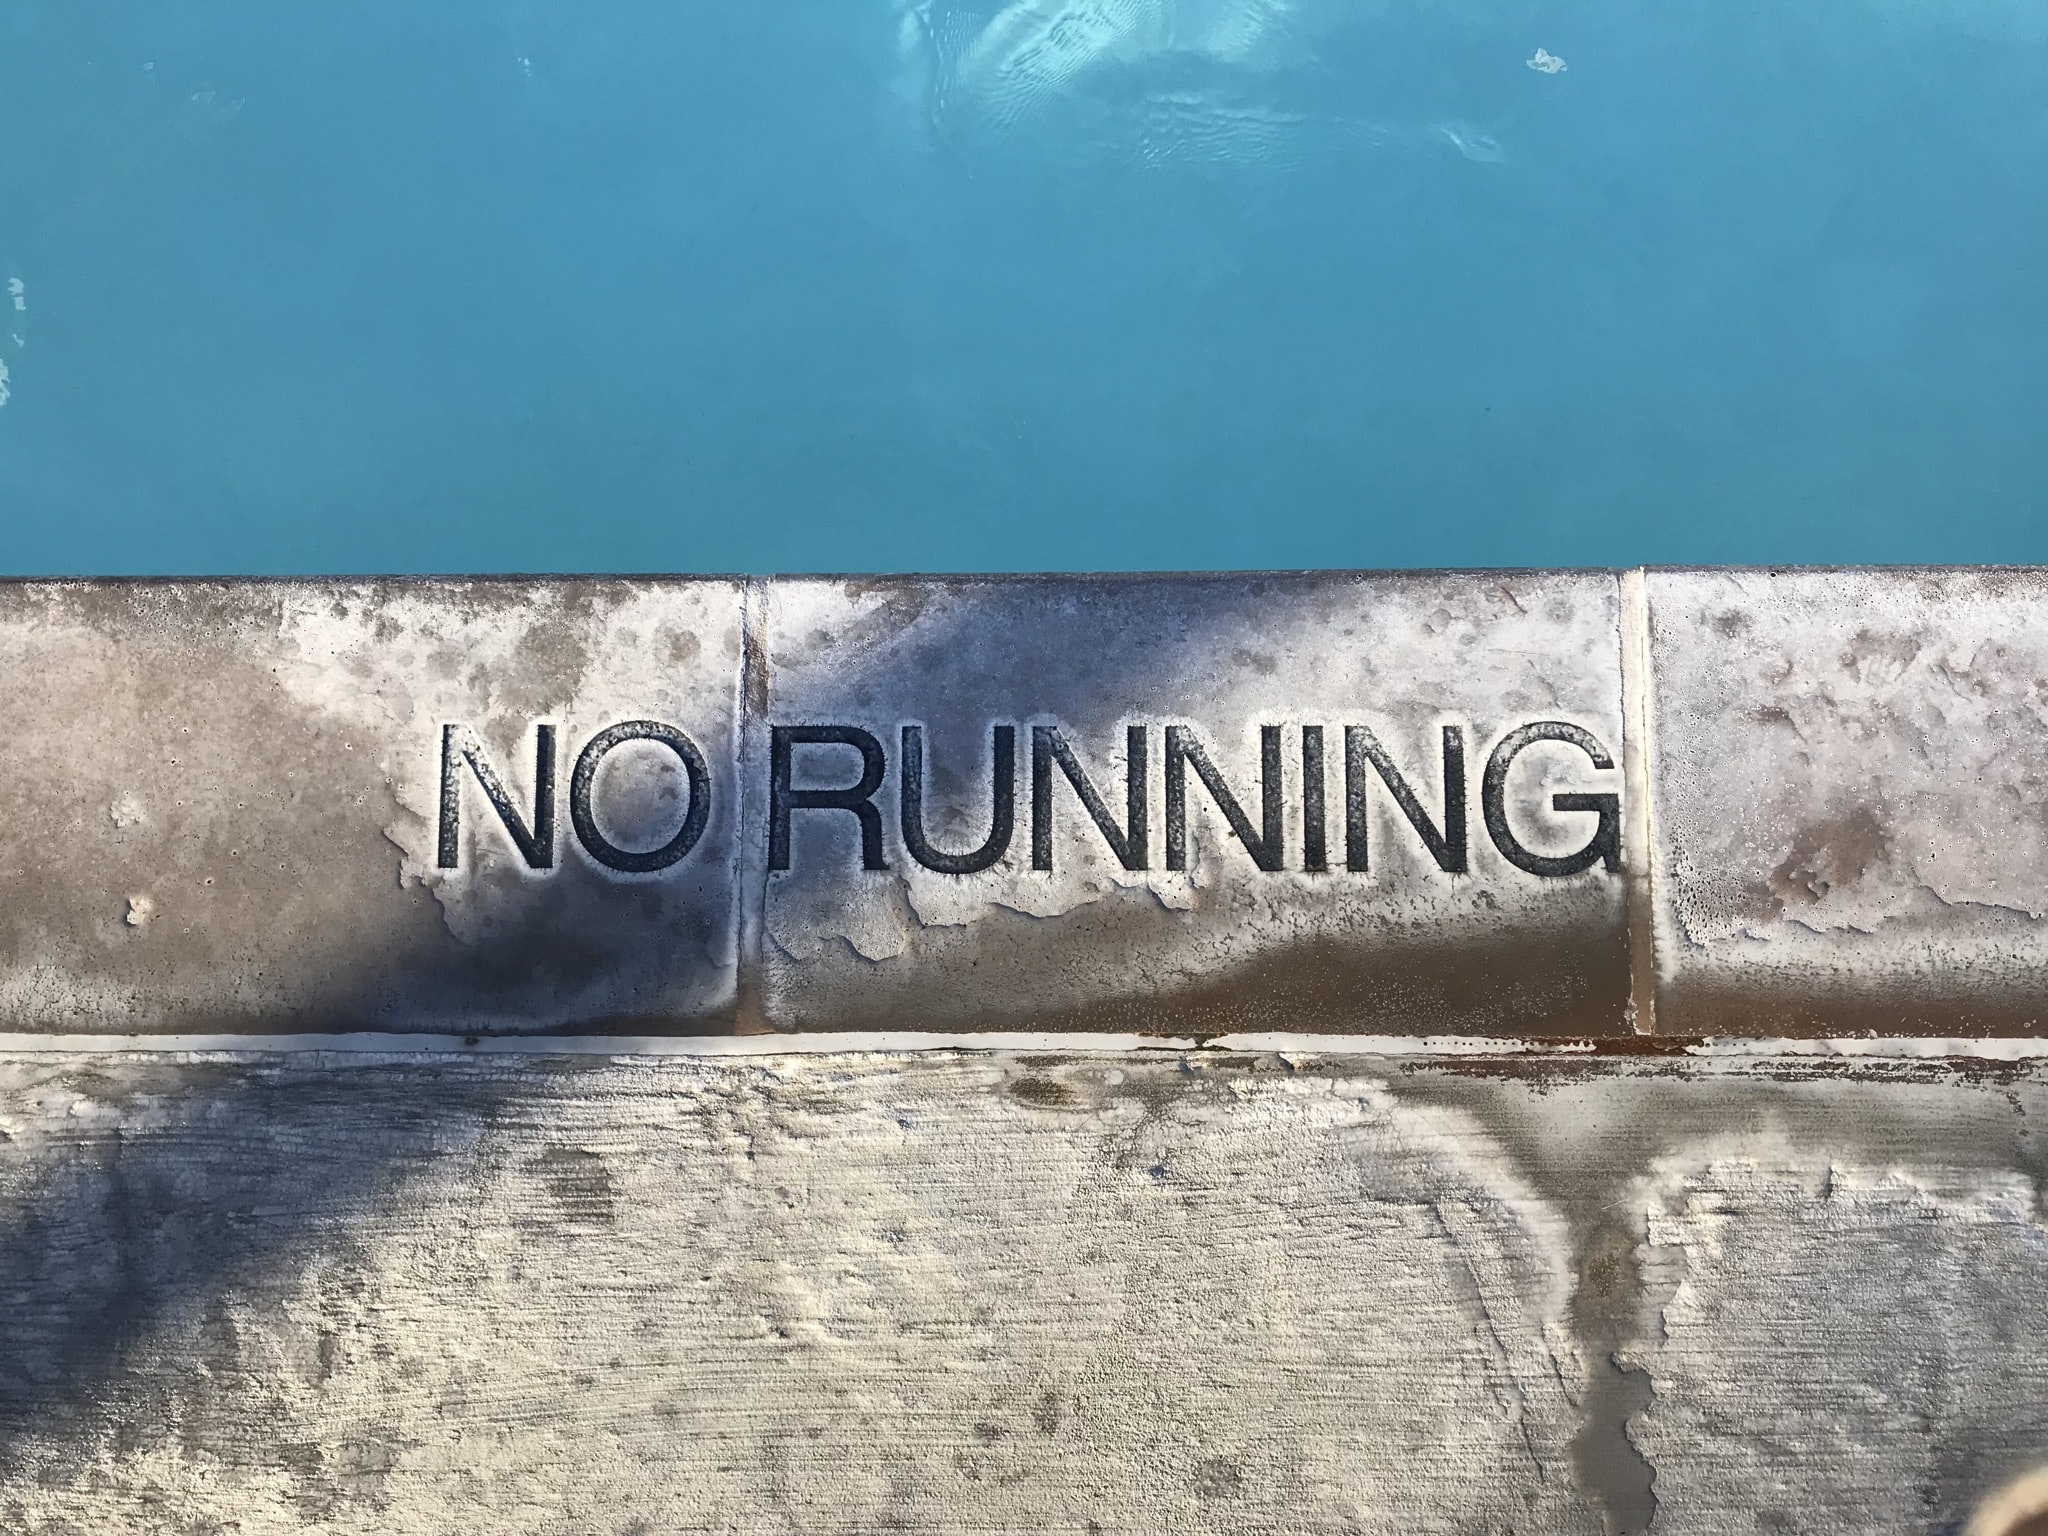 No running-printed pool ground